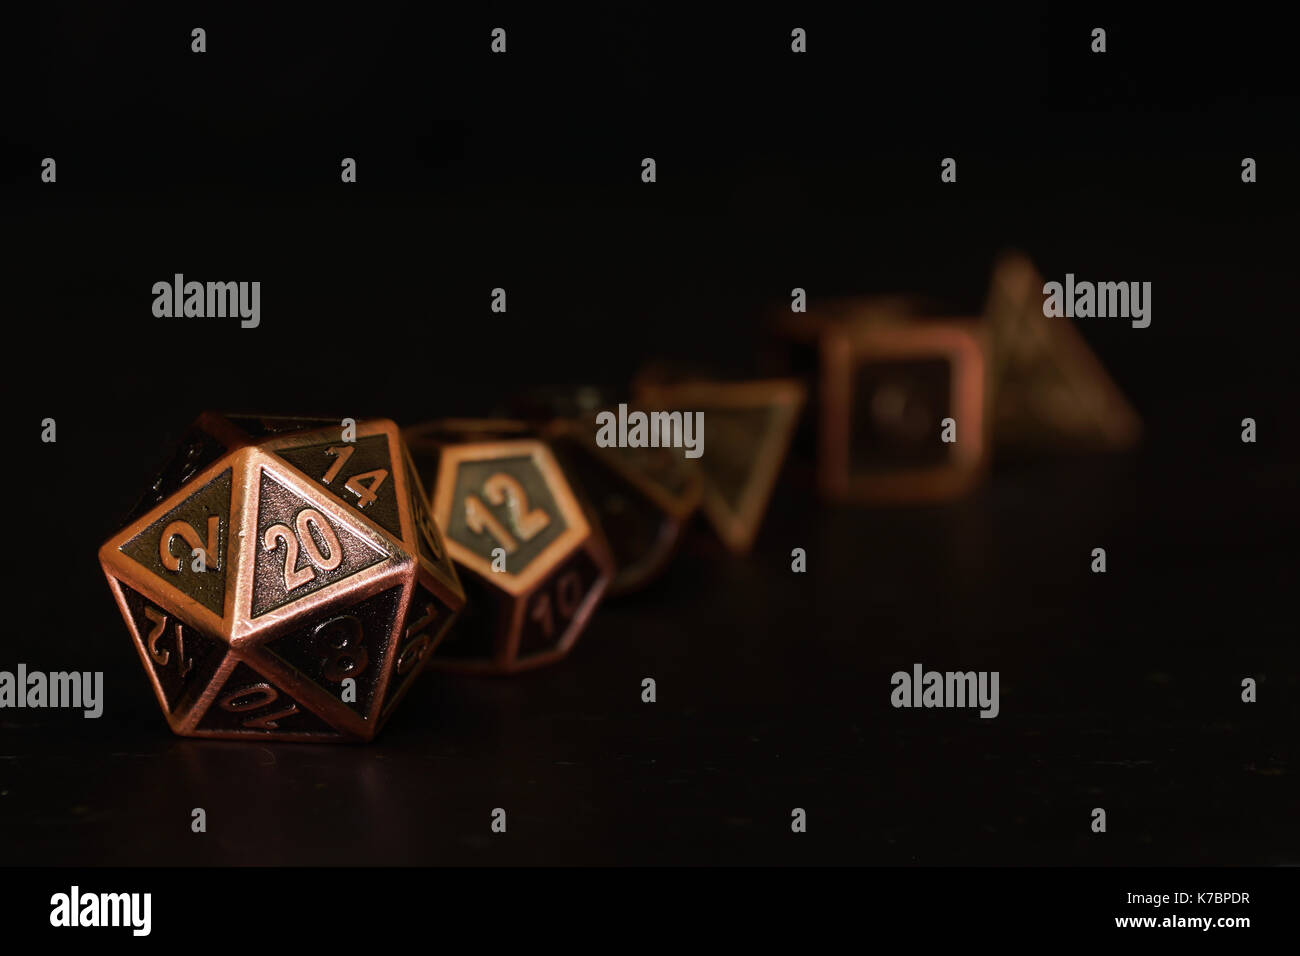 A set of polyhedral dice on a slate surface. These dice are used for role playing games such as Dungeons & Dragons. - Stock Image